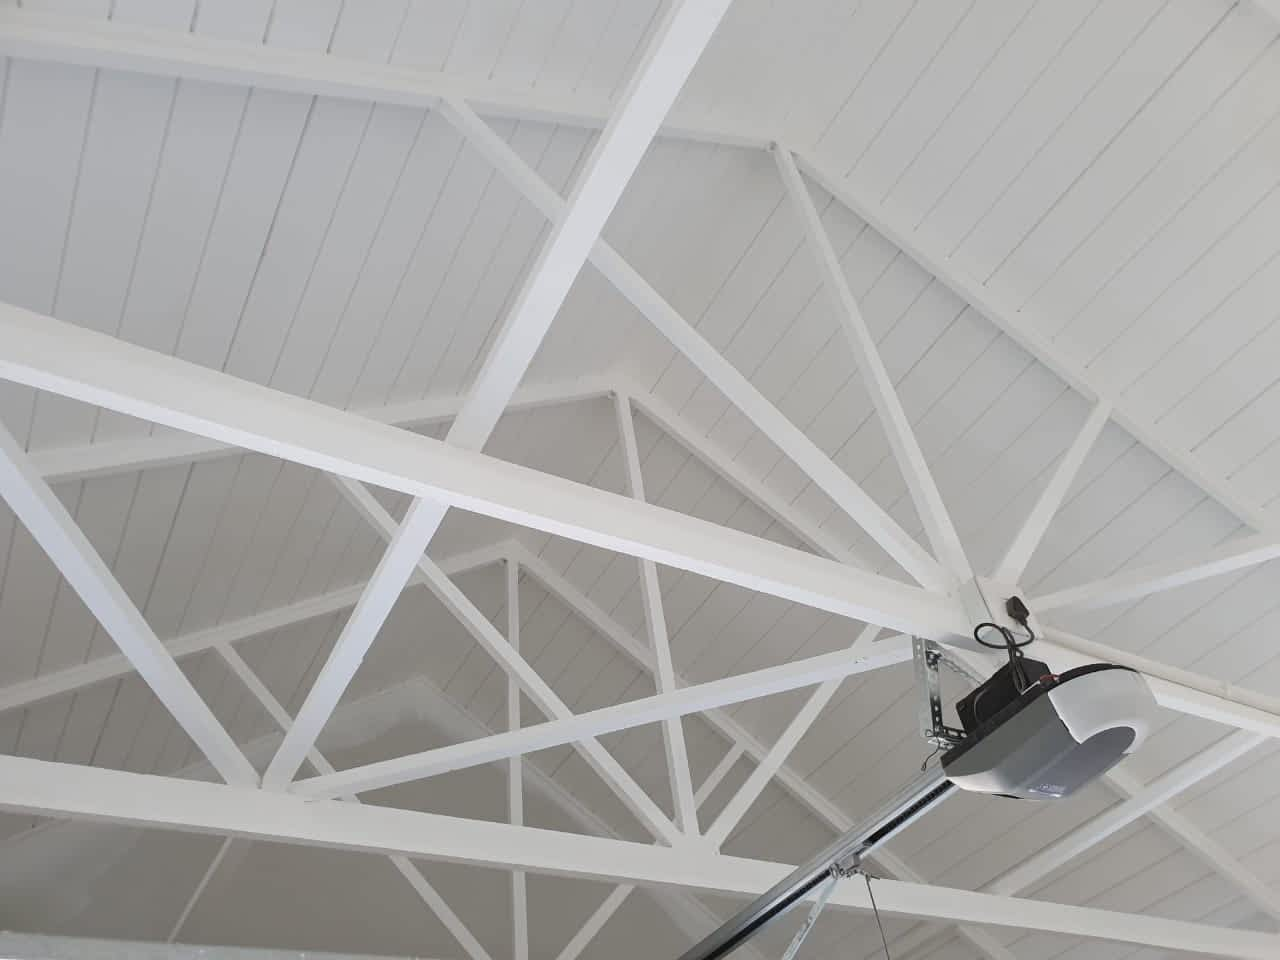 Roof shot of Blanca GIS (Pty) Ltd uses Graco Airless Paint Sprayers